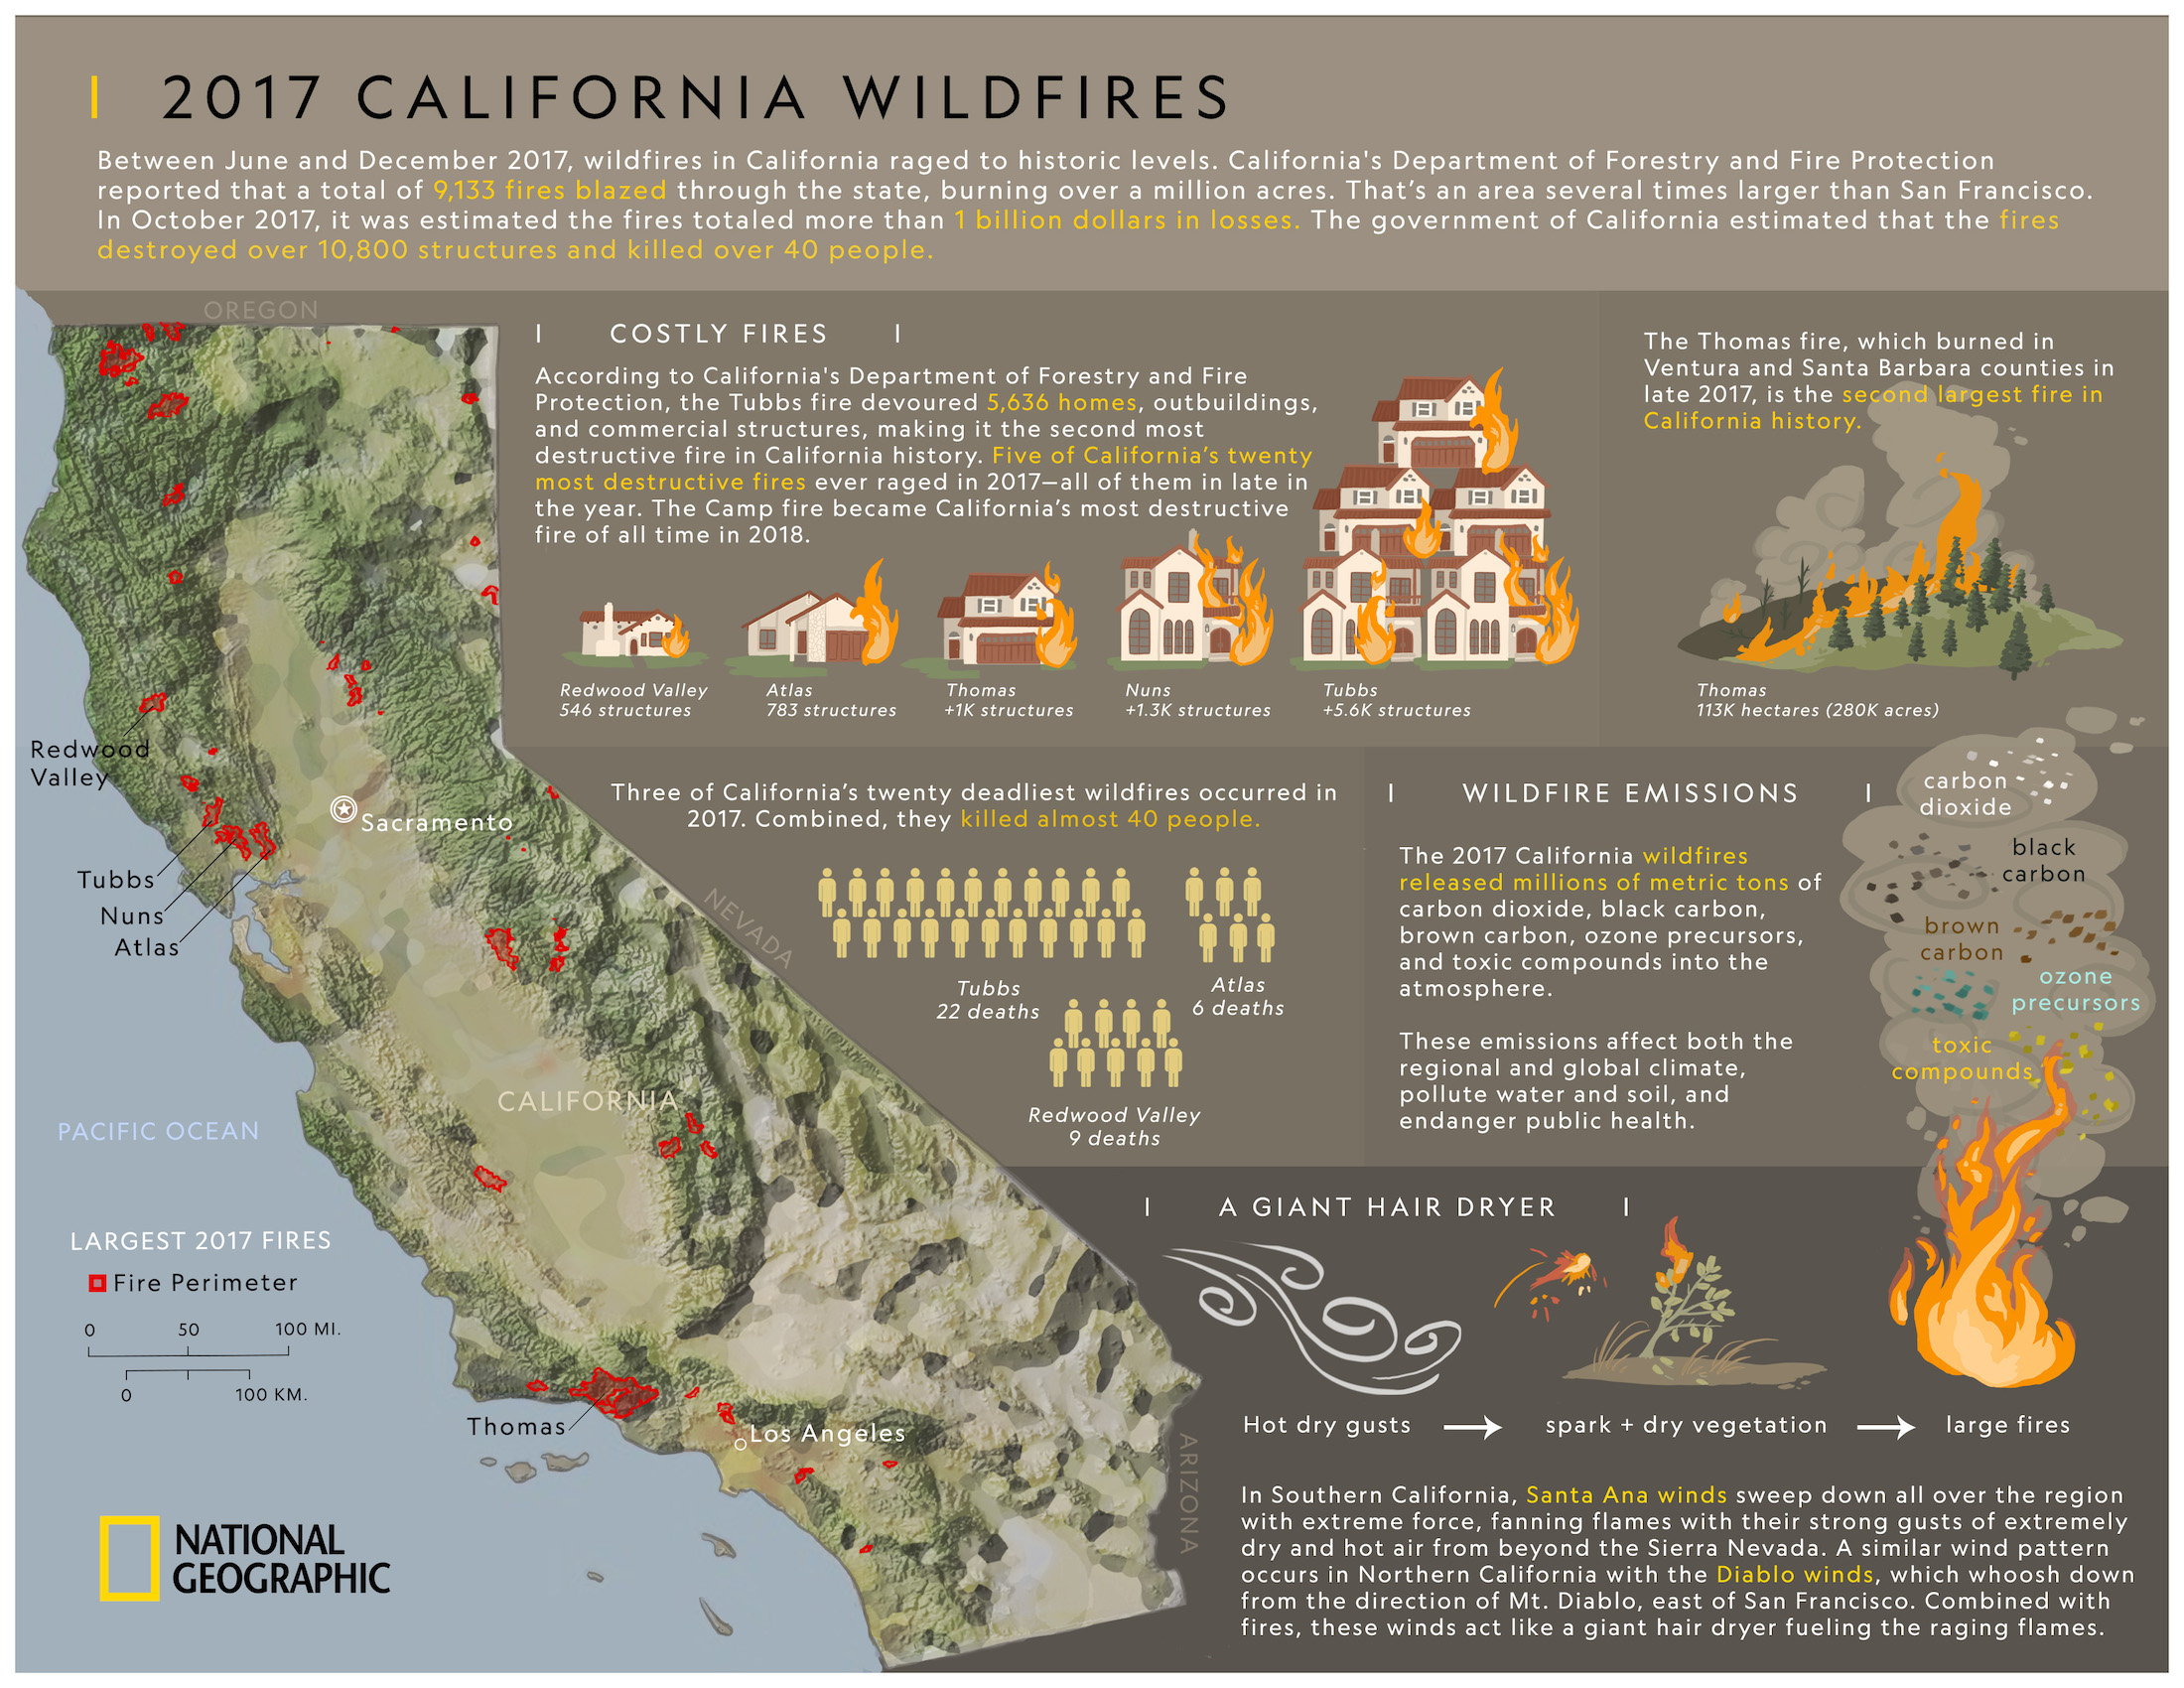 2017 CALIFORNIA WILDFIRES